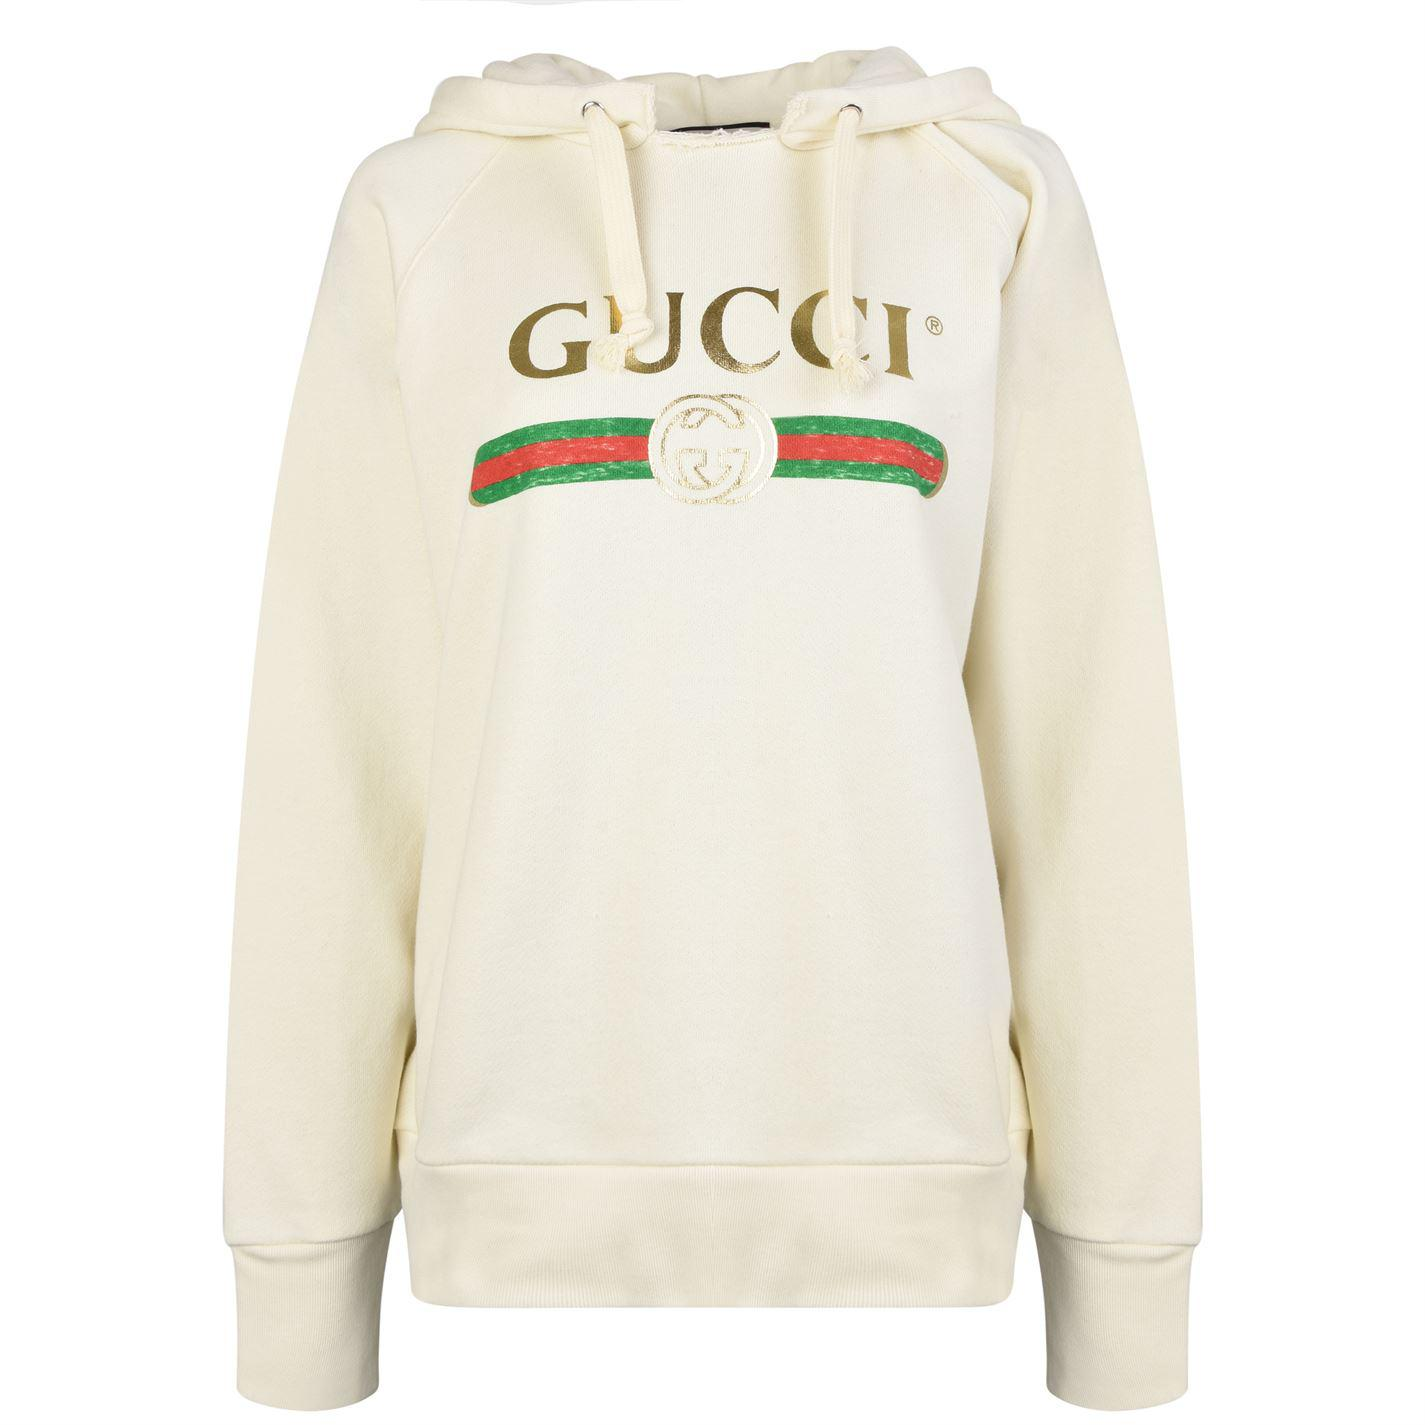 28225c04933 Gucci Embroidered Fake Logo Hooded Sweatshirt in White - Lyst